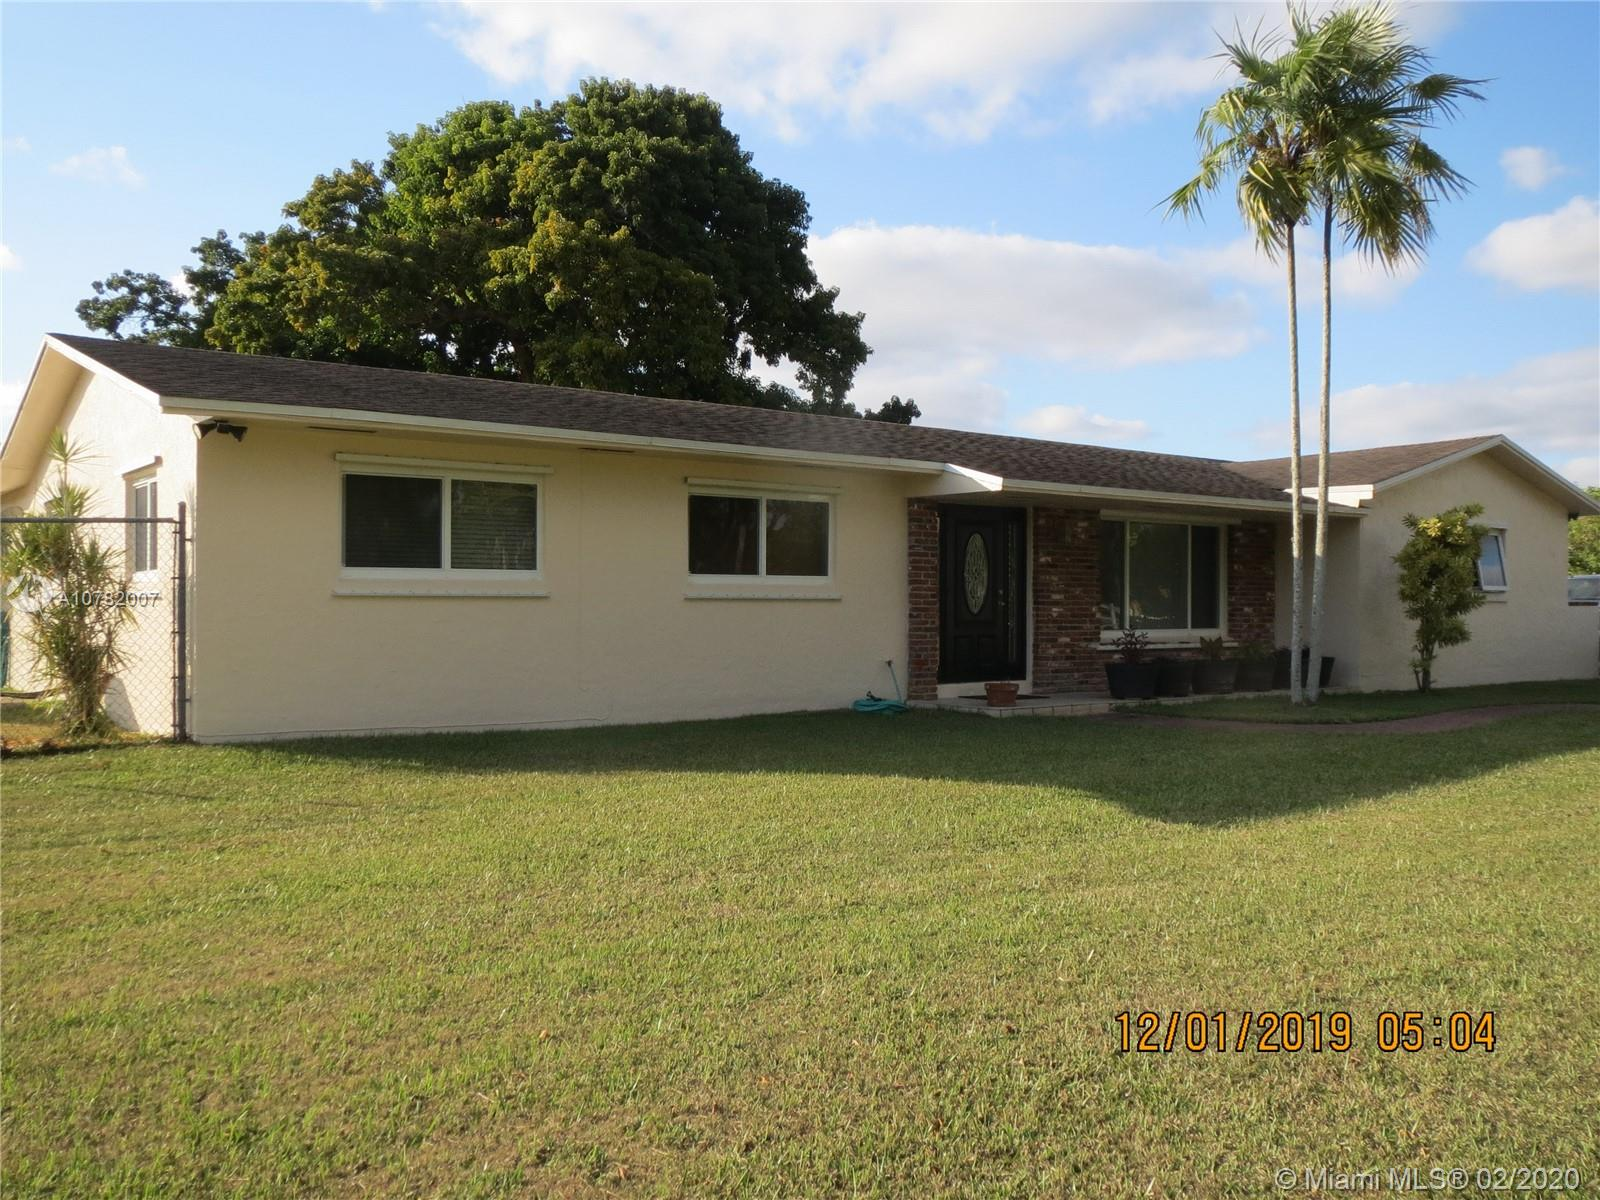 25420 SW 193rd ave, Unincorporated Dade County, FL 33031 - Unincorporated Dade County, FL real estate listing